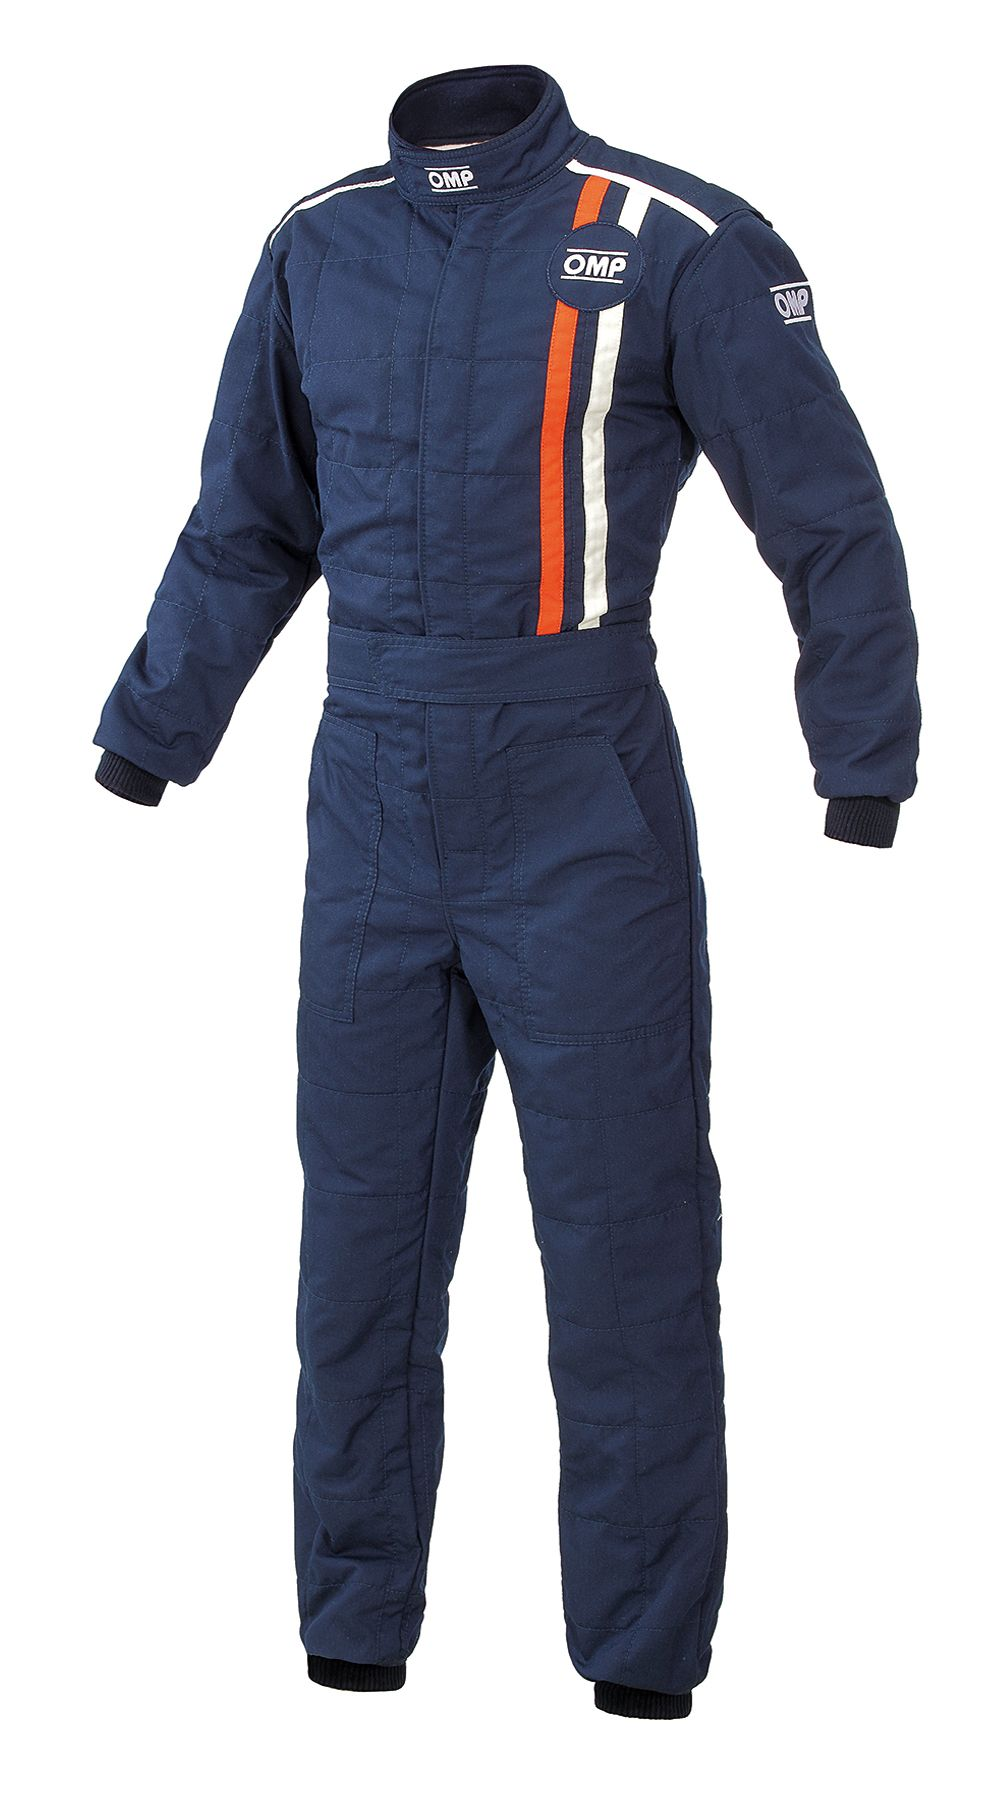 Omp Classic Race Suit Navy In 2020 Mens Fashion Casual Outfits Mechanic Clothes Racing Suit